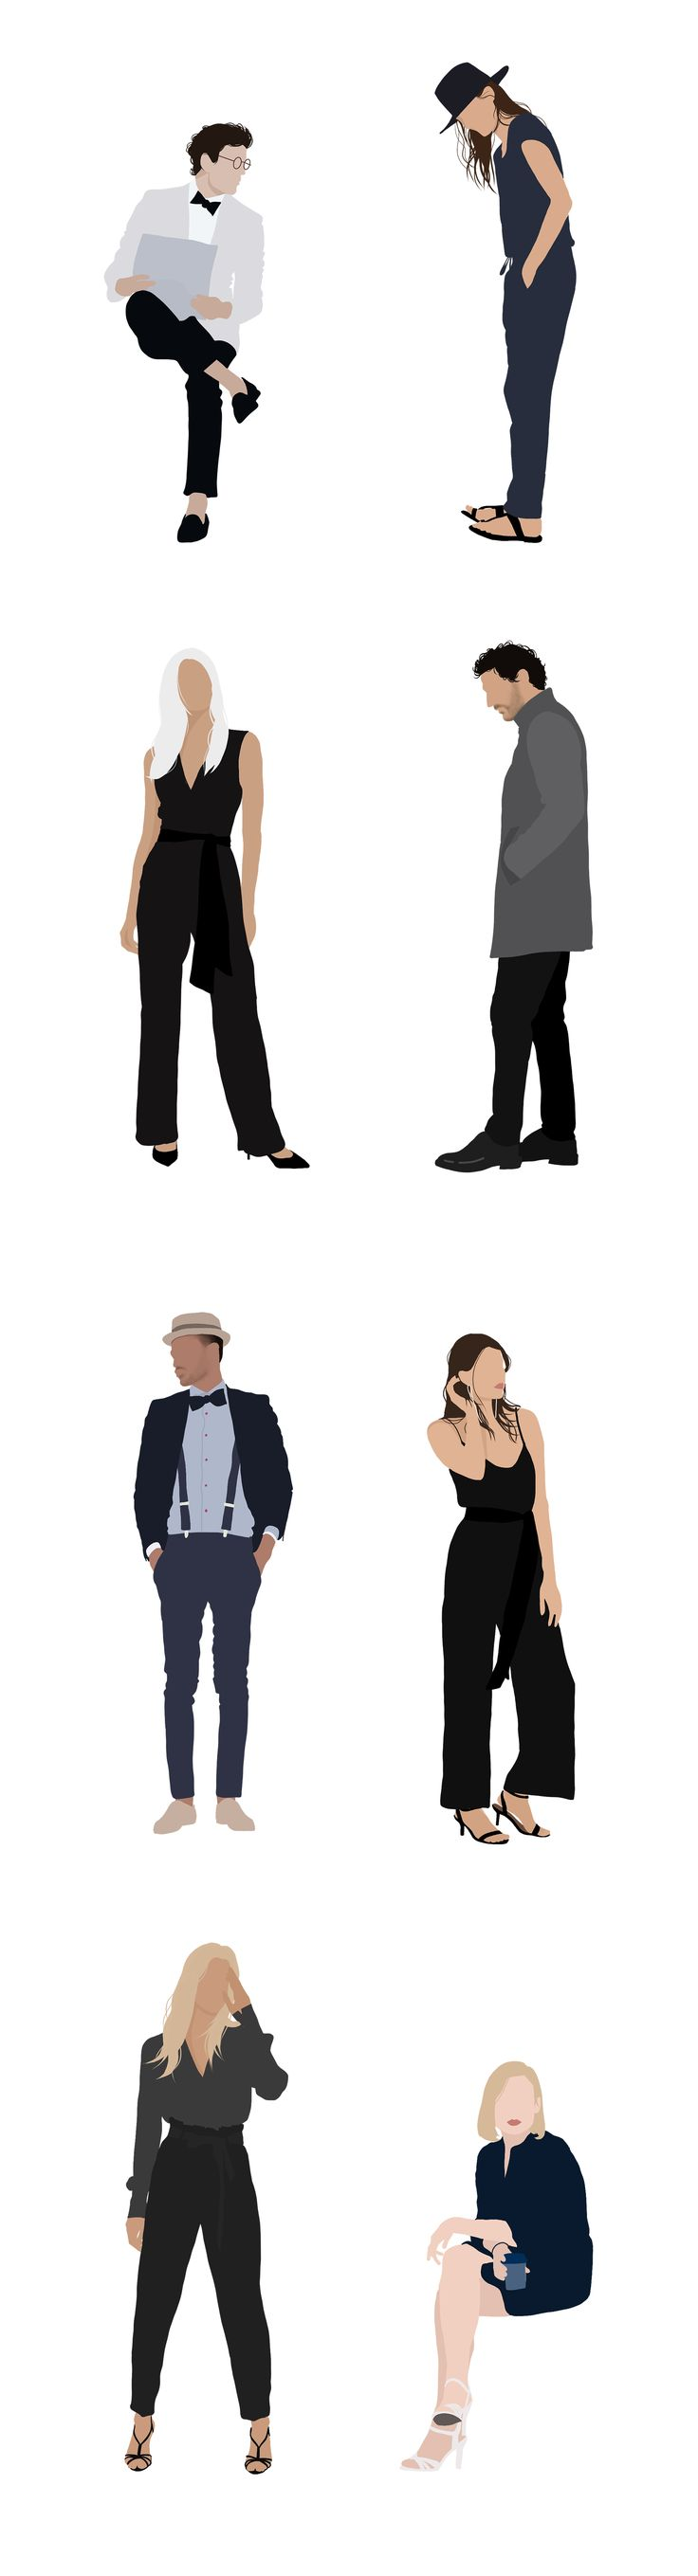 8 People Package Vector Clipart PNG AI Human Person Illustration Woman Man 8 People Package Vector